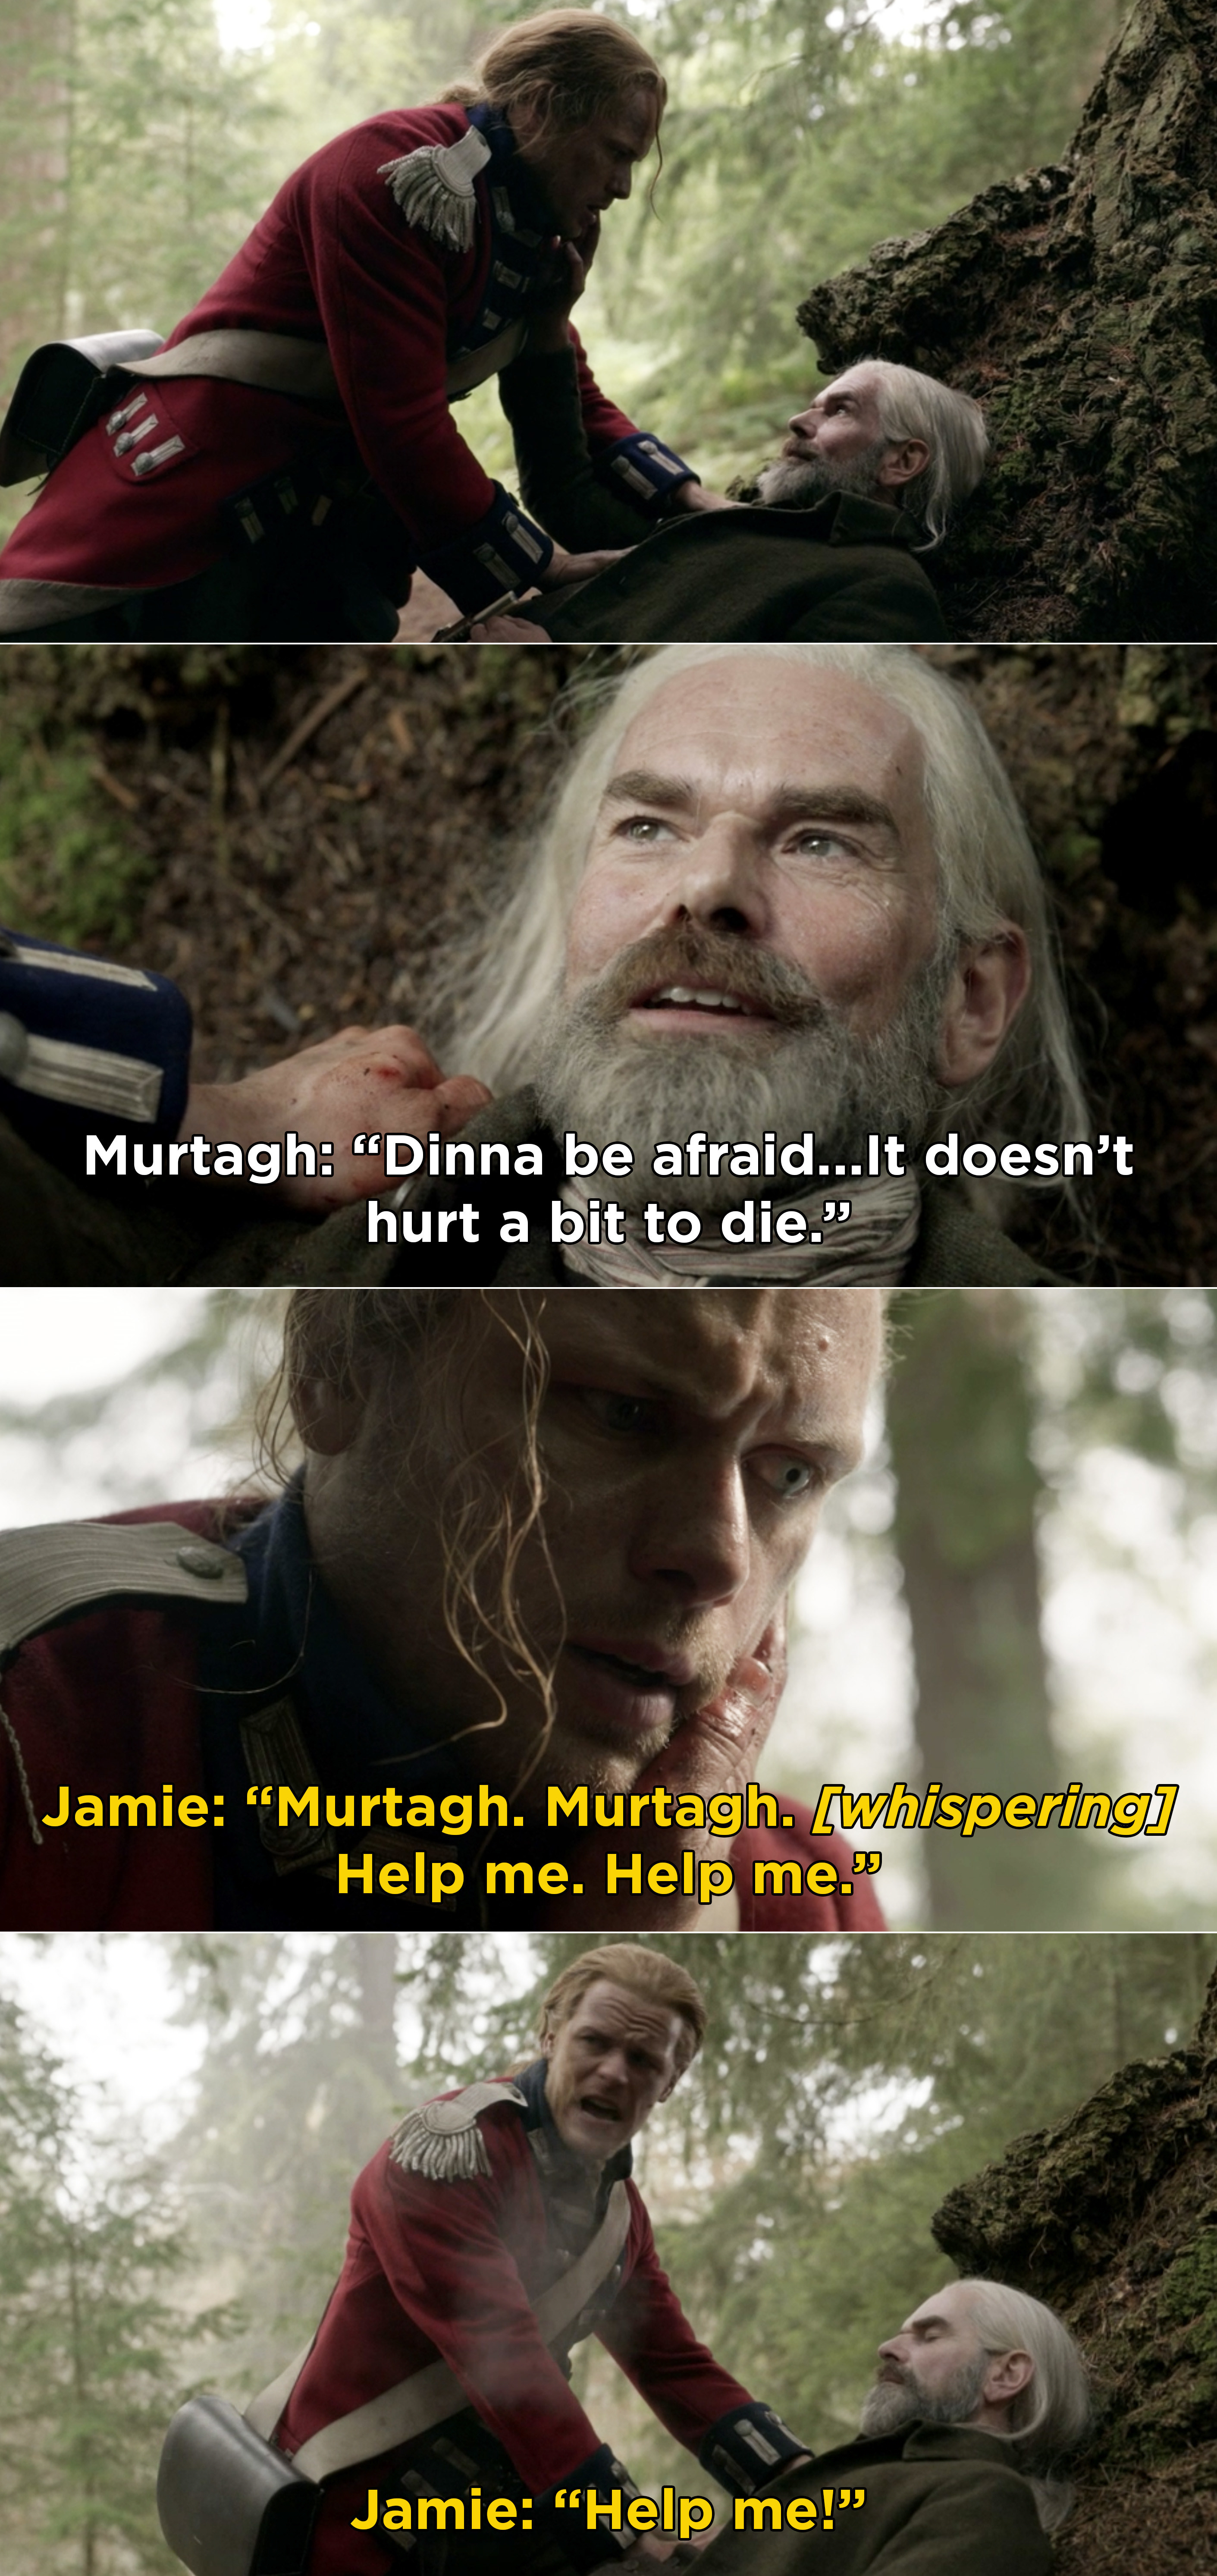 """Murtagh telling Jamie that it """"doesn't hurt to die"""" and Jamie crying and screaming for help"""